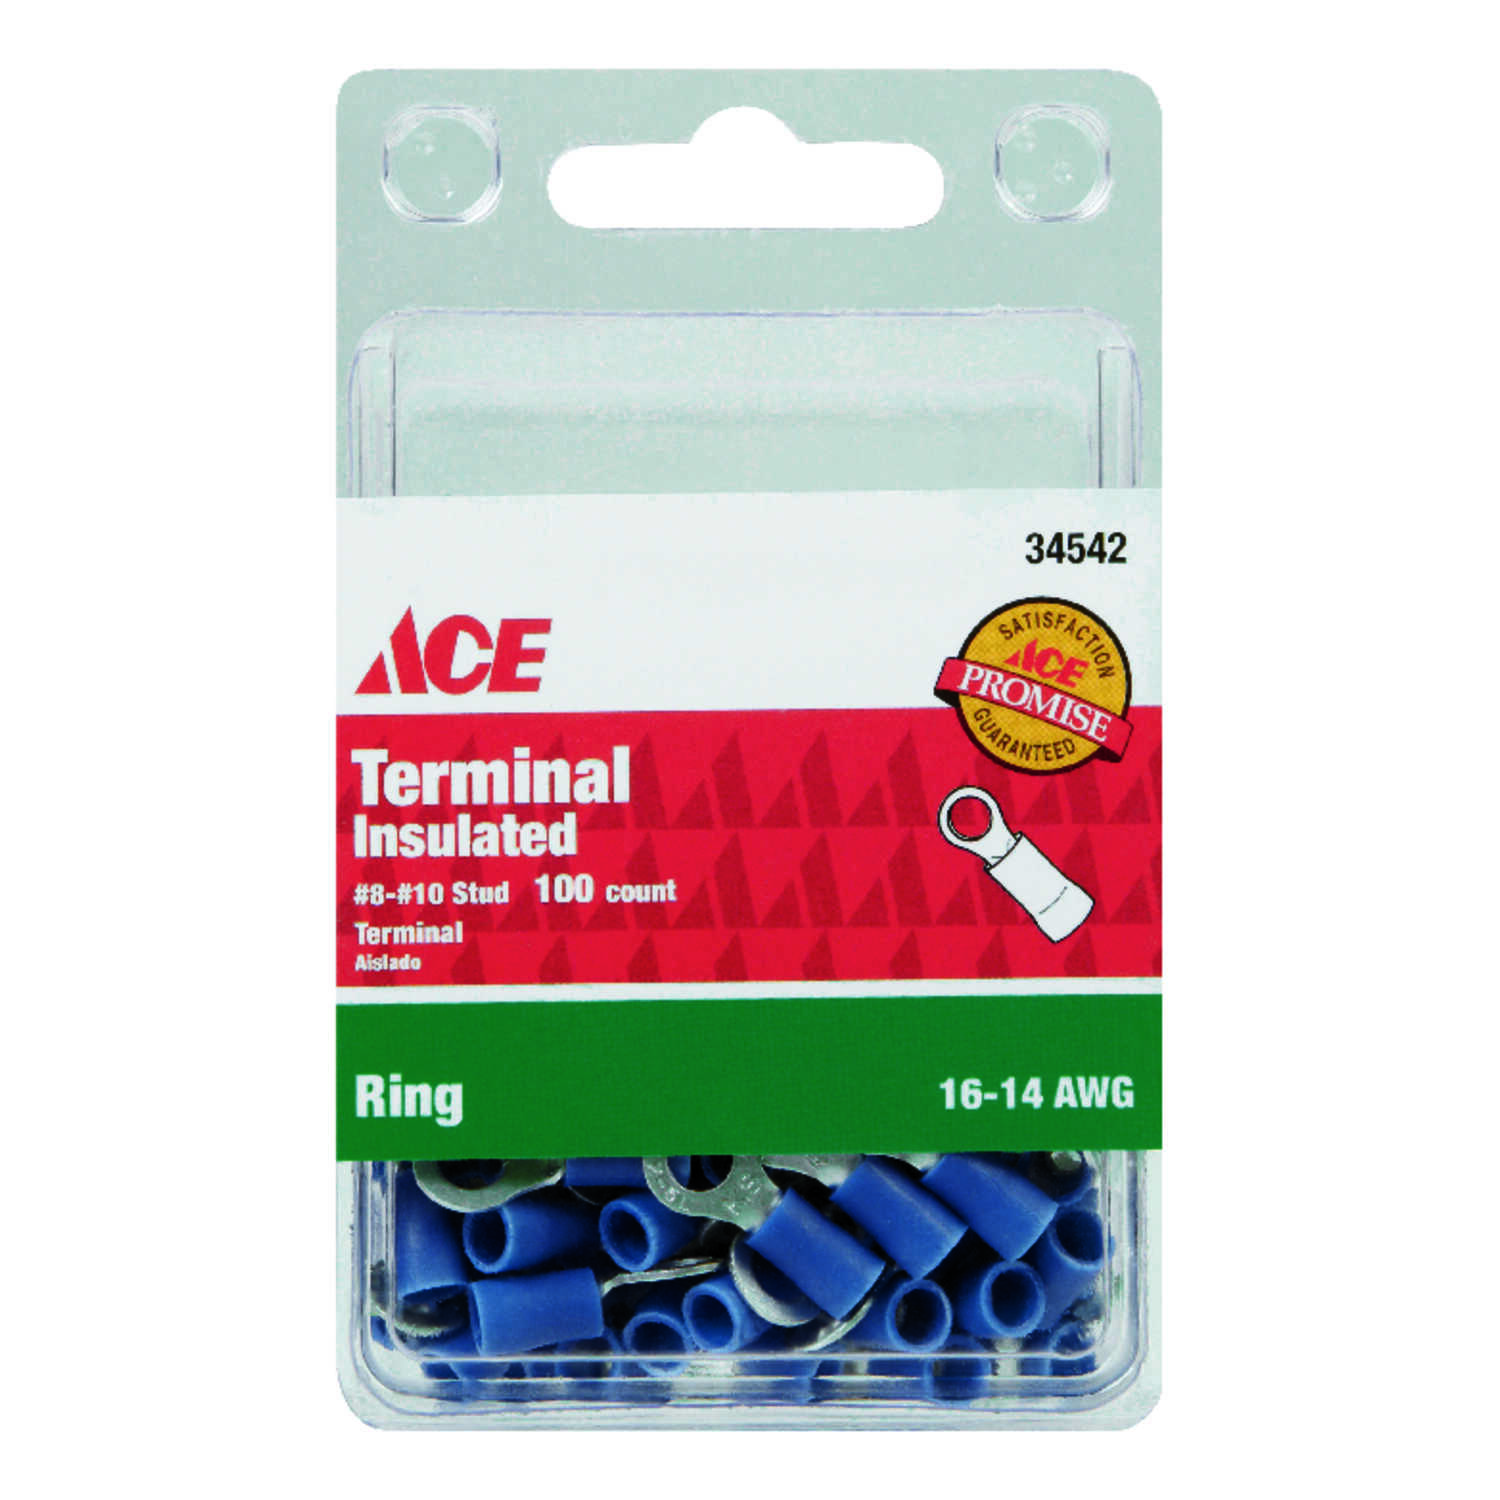 Ace  Insulated Wire  Ring Terminal  Blue  100 pk